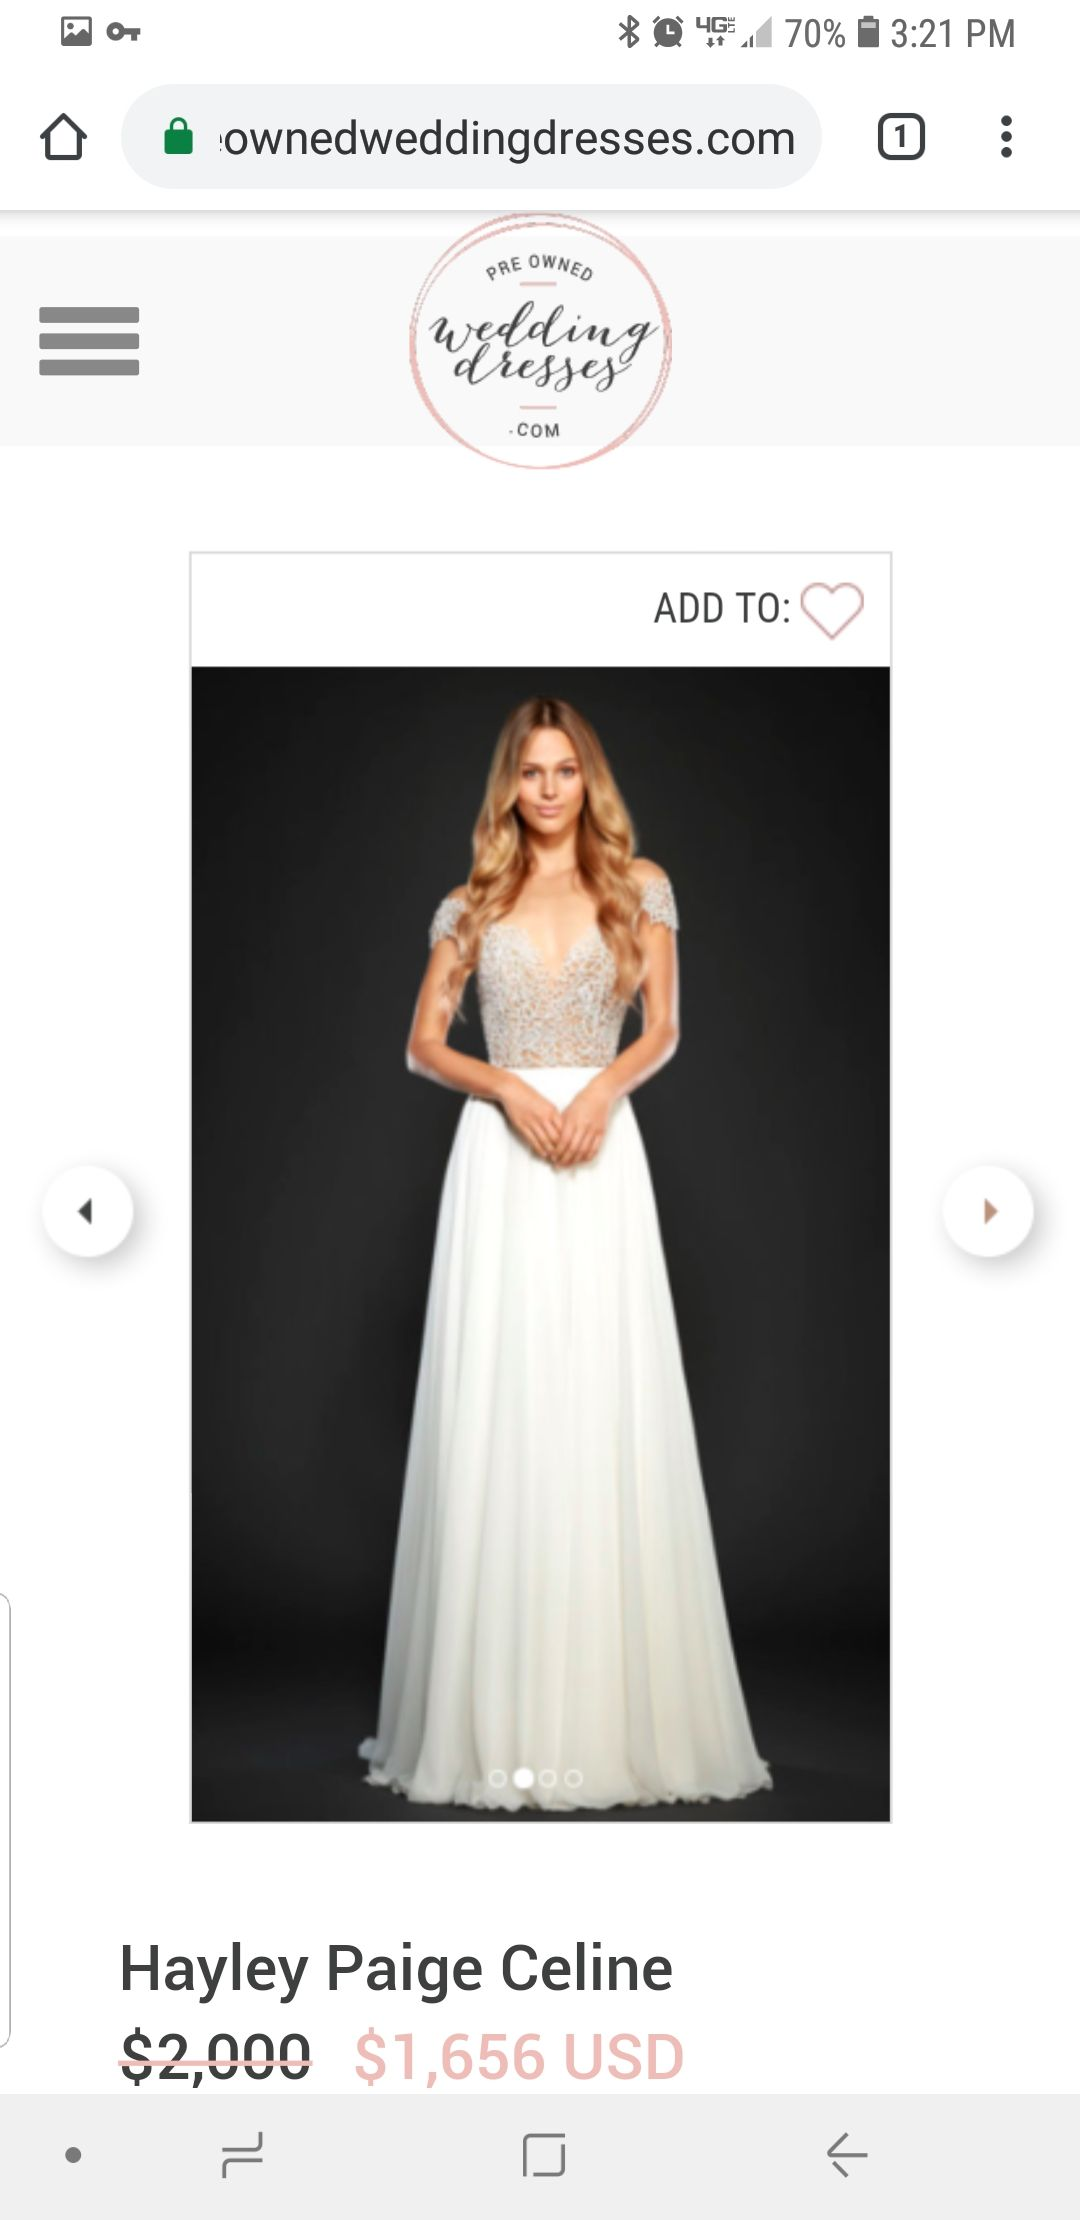 Previously owned wedding dresses  Trying to find a cheaper version of this dress wedding dress